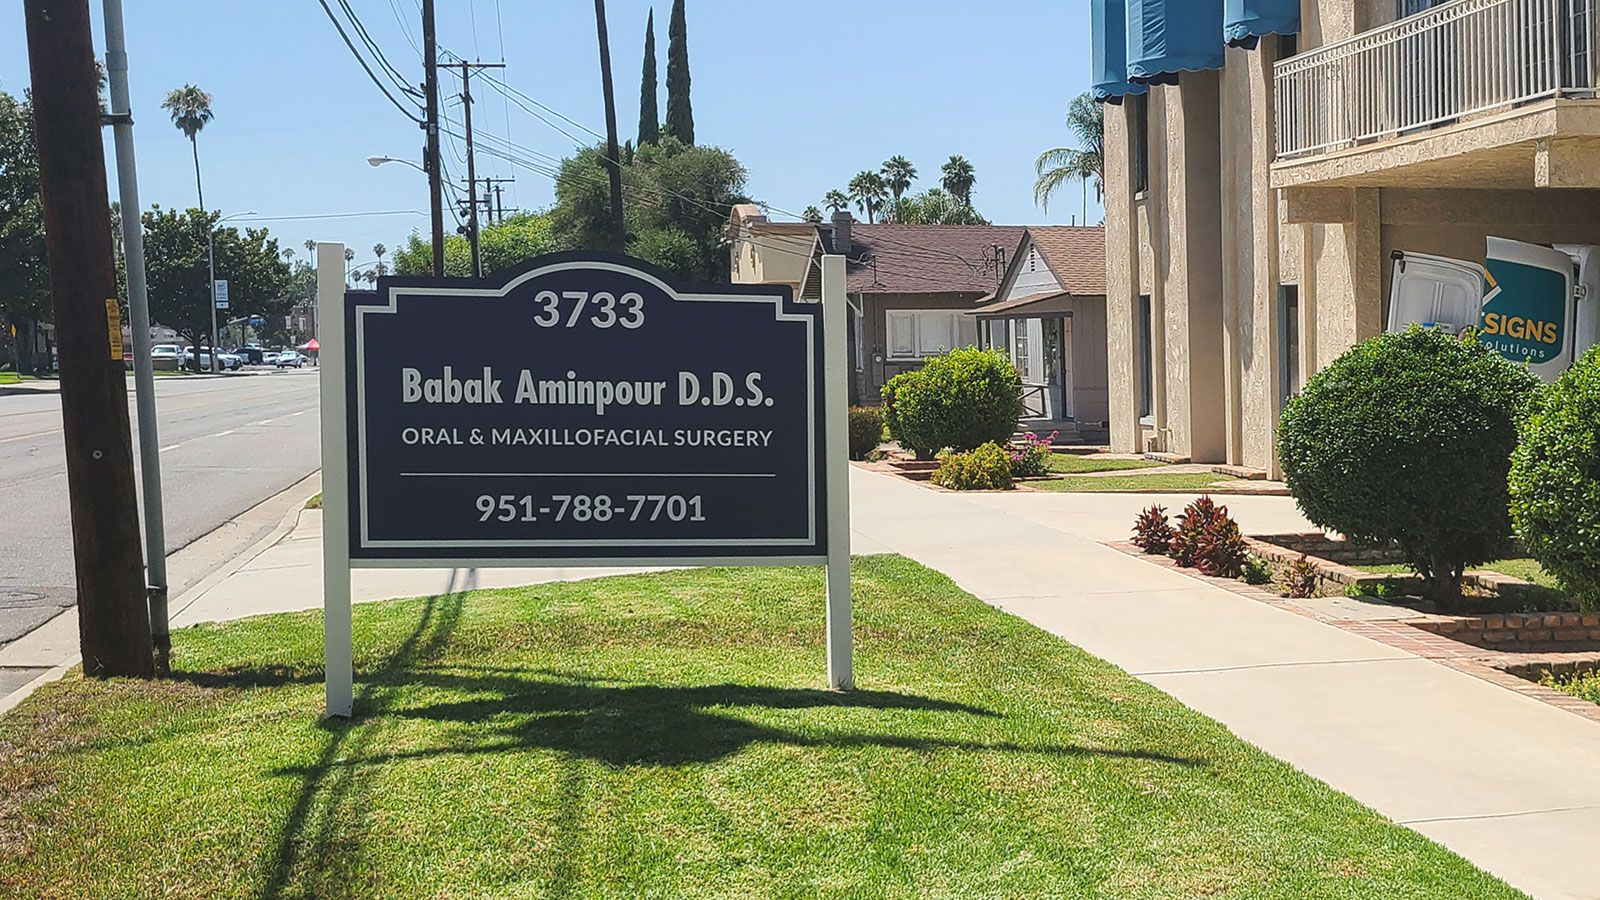 Double sided monument sign